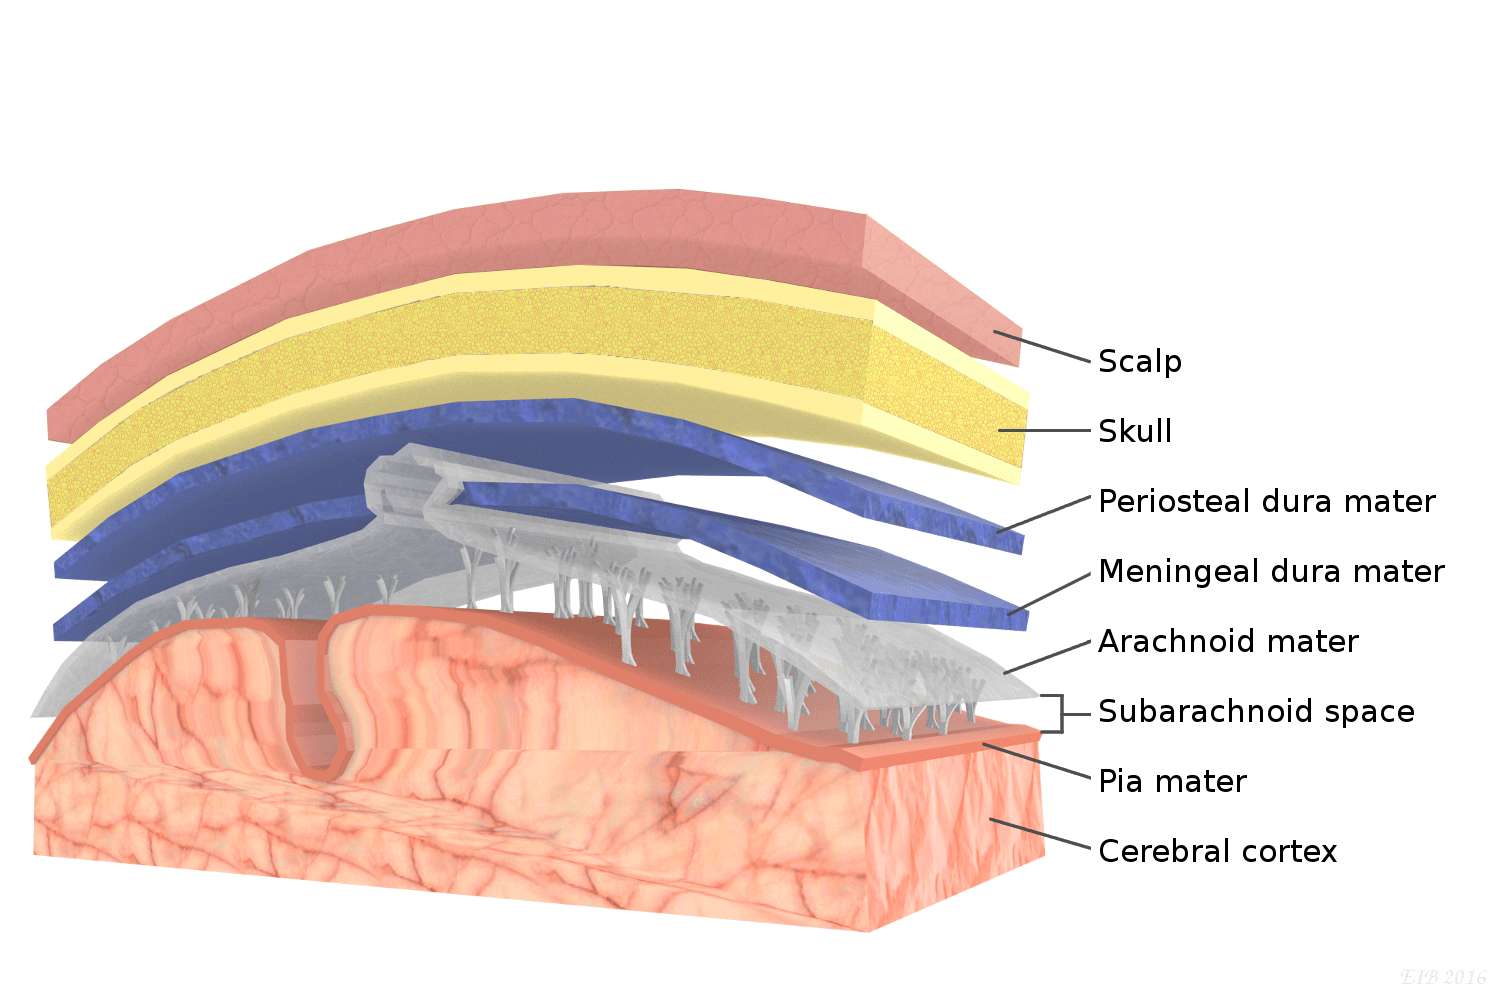 skin layers diagram labeled simple 79 trans am ac wiring meninges function and health problems